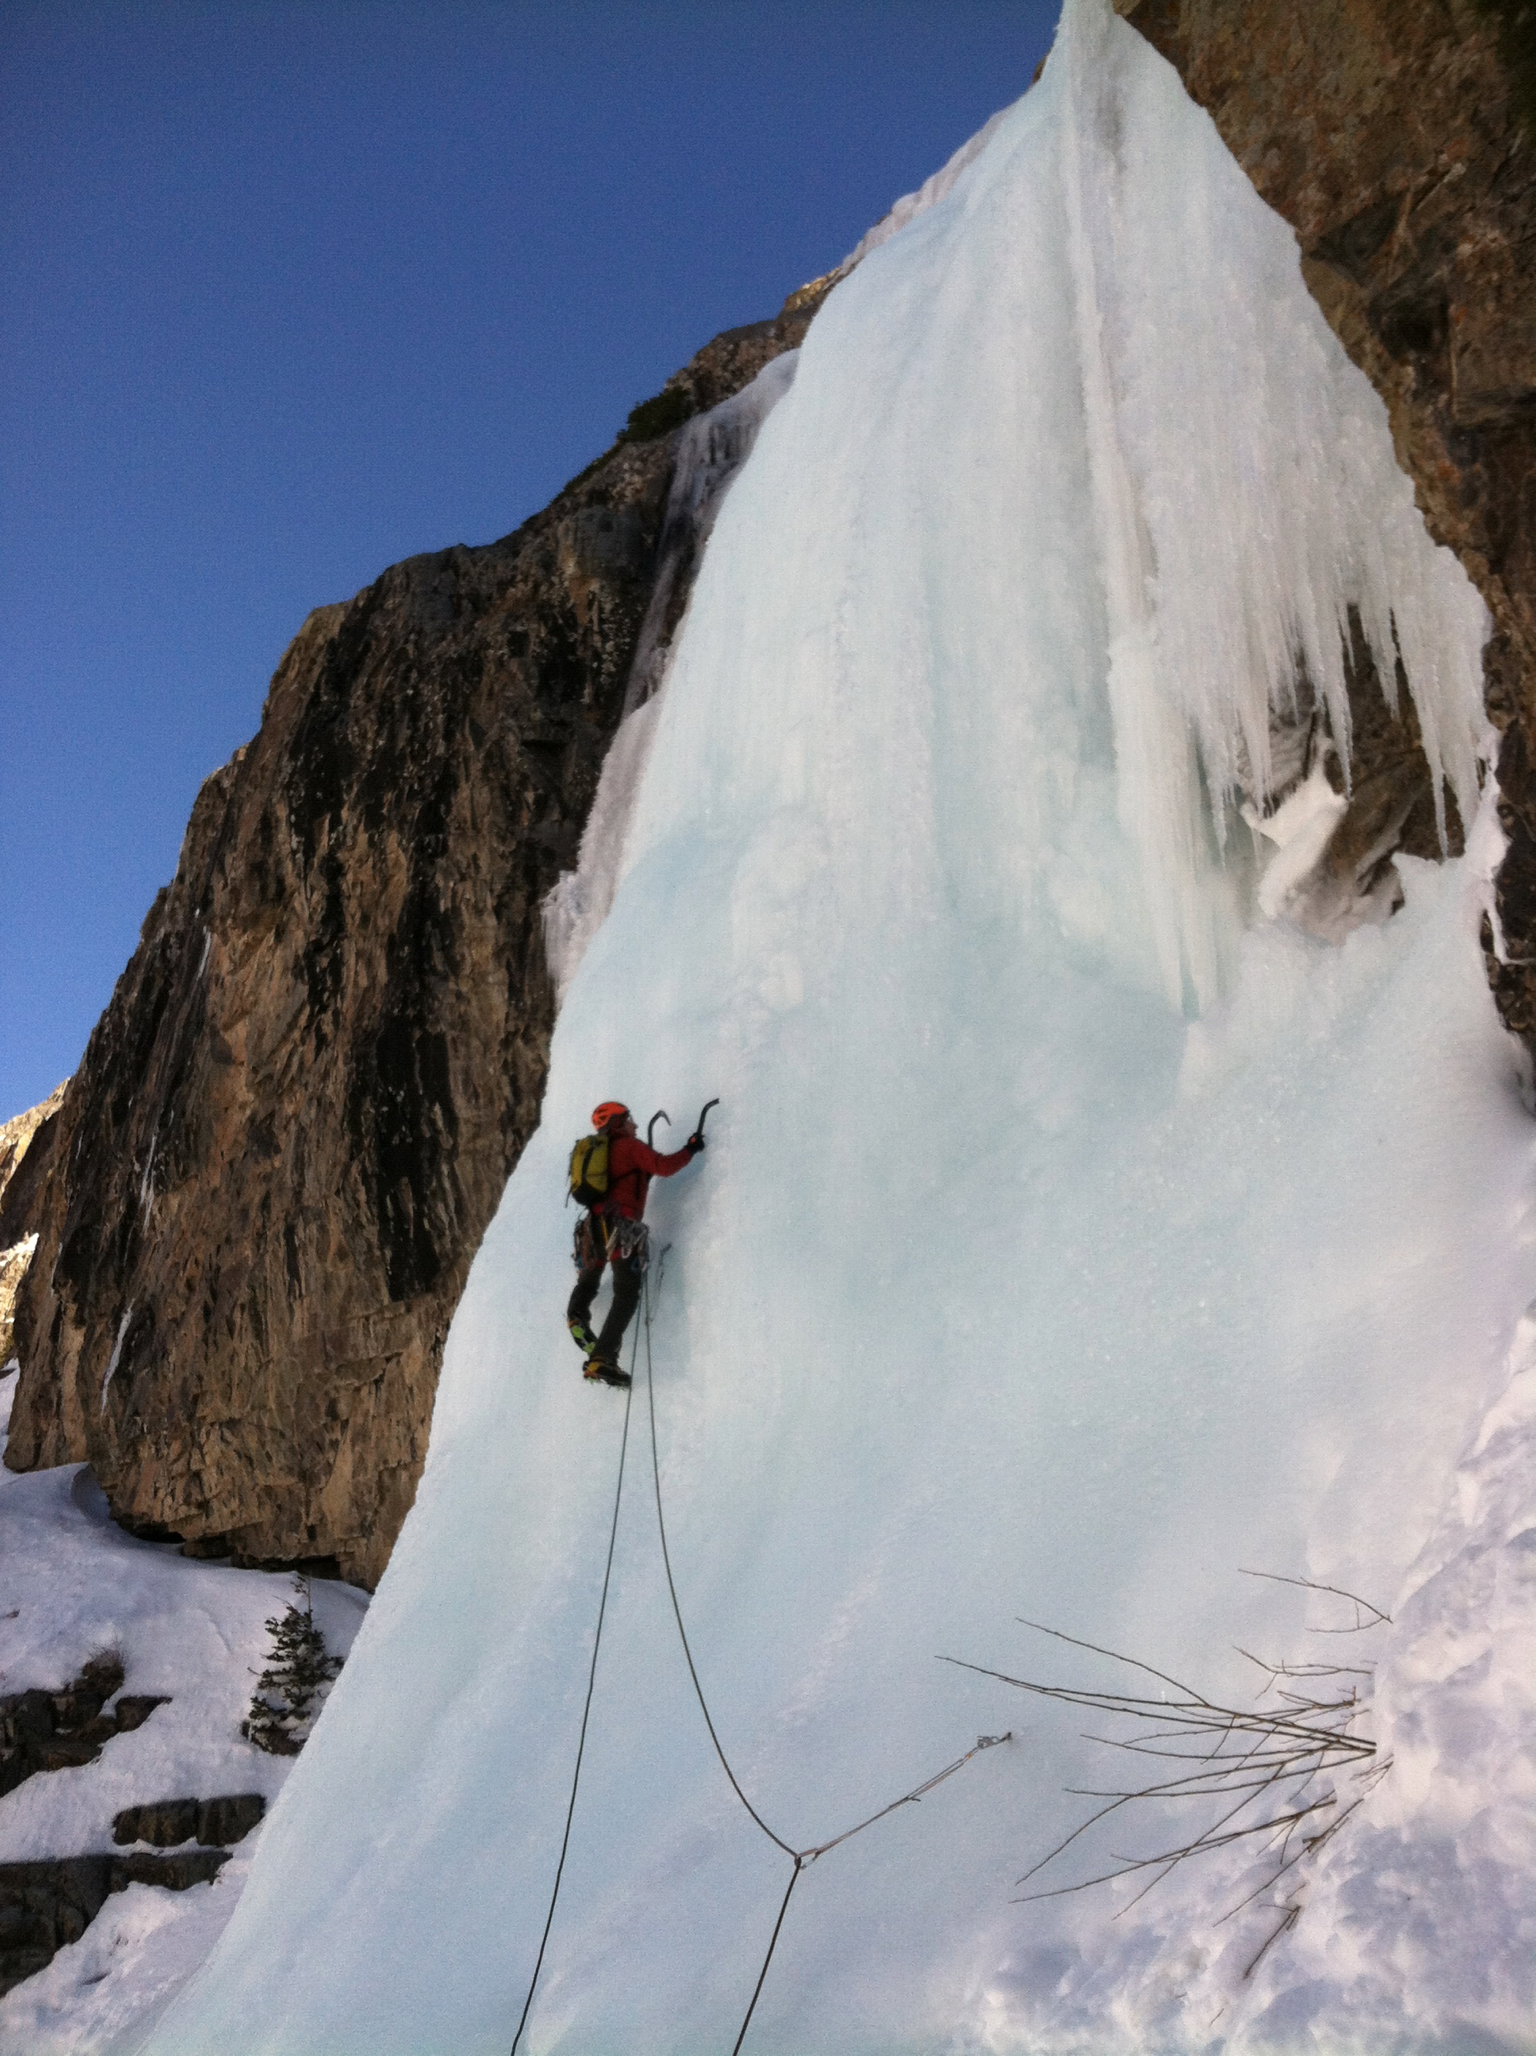 Ice climbing on Stairway to Heaven in Colorado